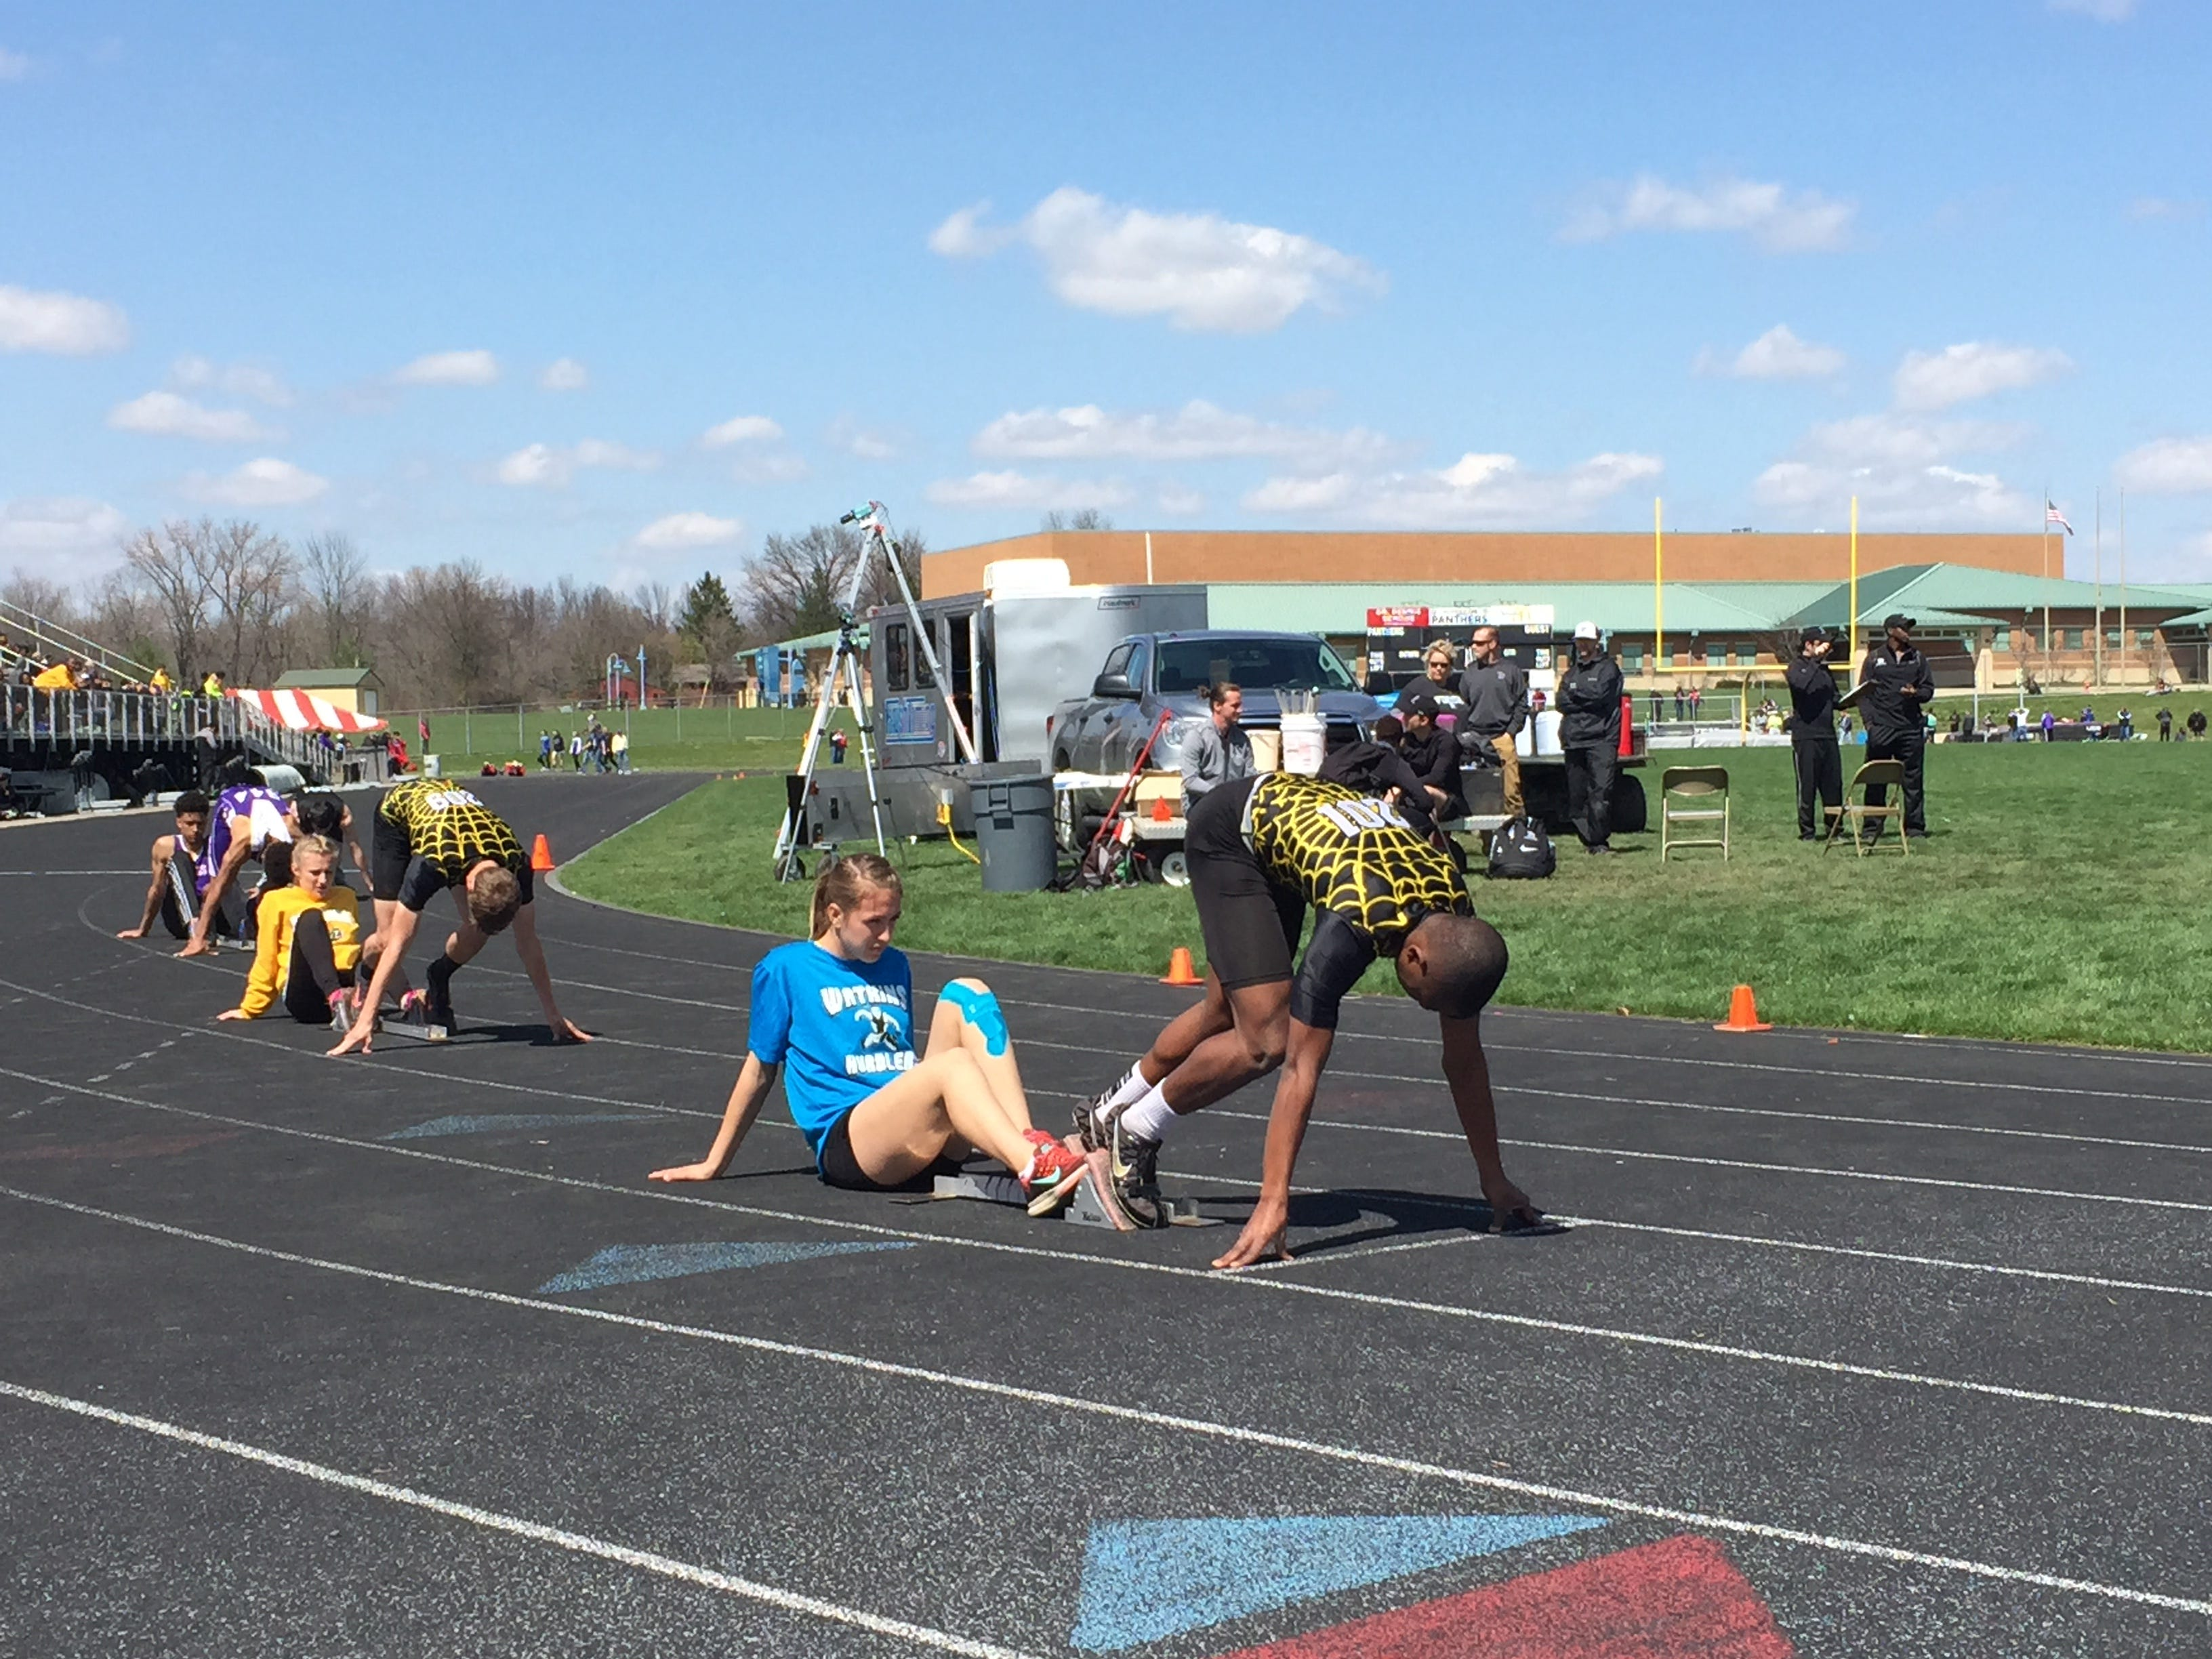 Watkins Memorial's Chance Abbitt, back, and Desmond Melson get set to start the 400 during the Stingel Invitational at Pickerington North on April 11. Abbitt and Melson are two of central Ohio's best in the event.